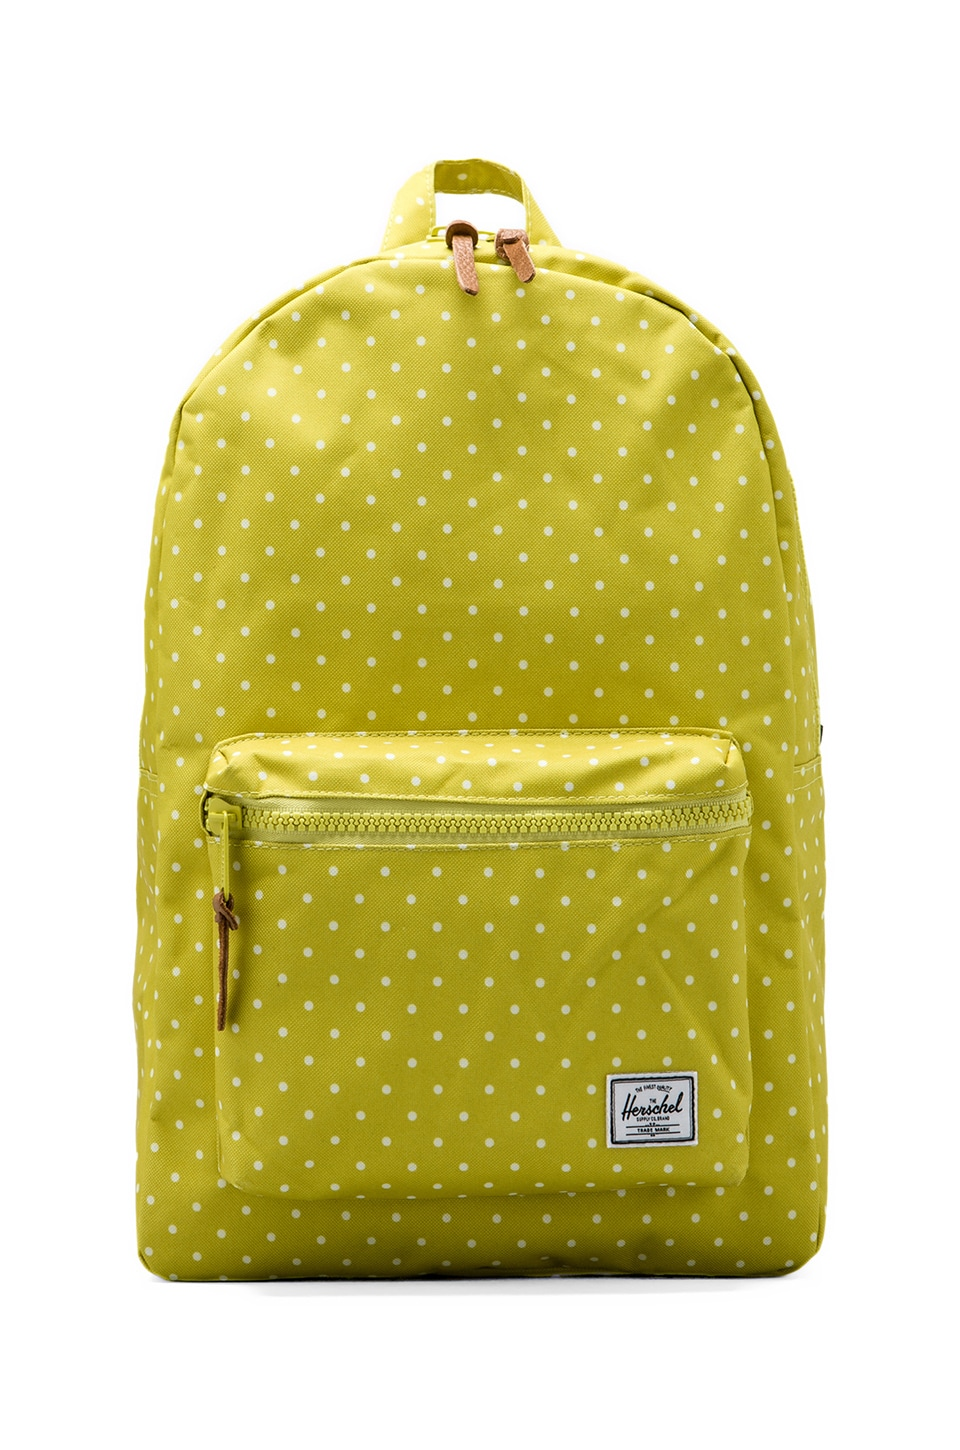 Herschel Supply Co. Settlement Polka Dot Backpack in Apple/White